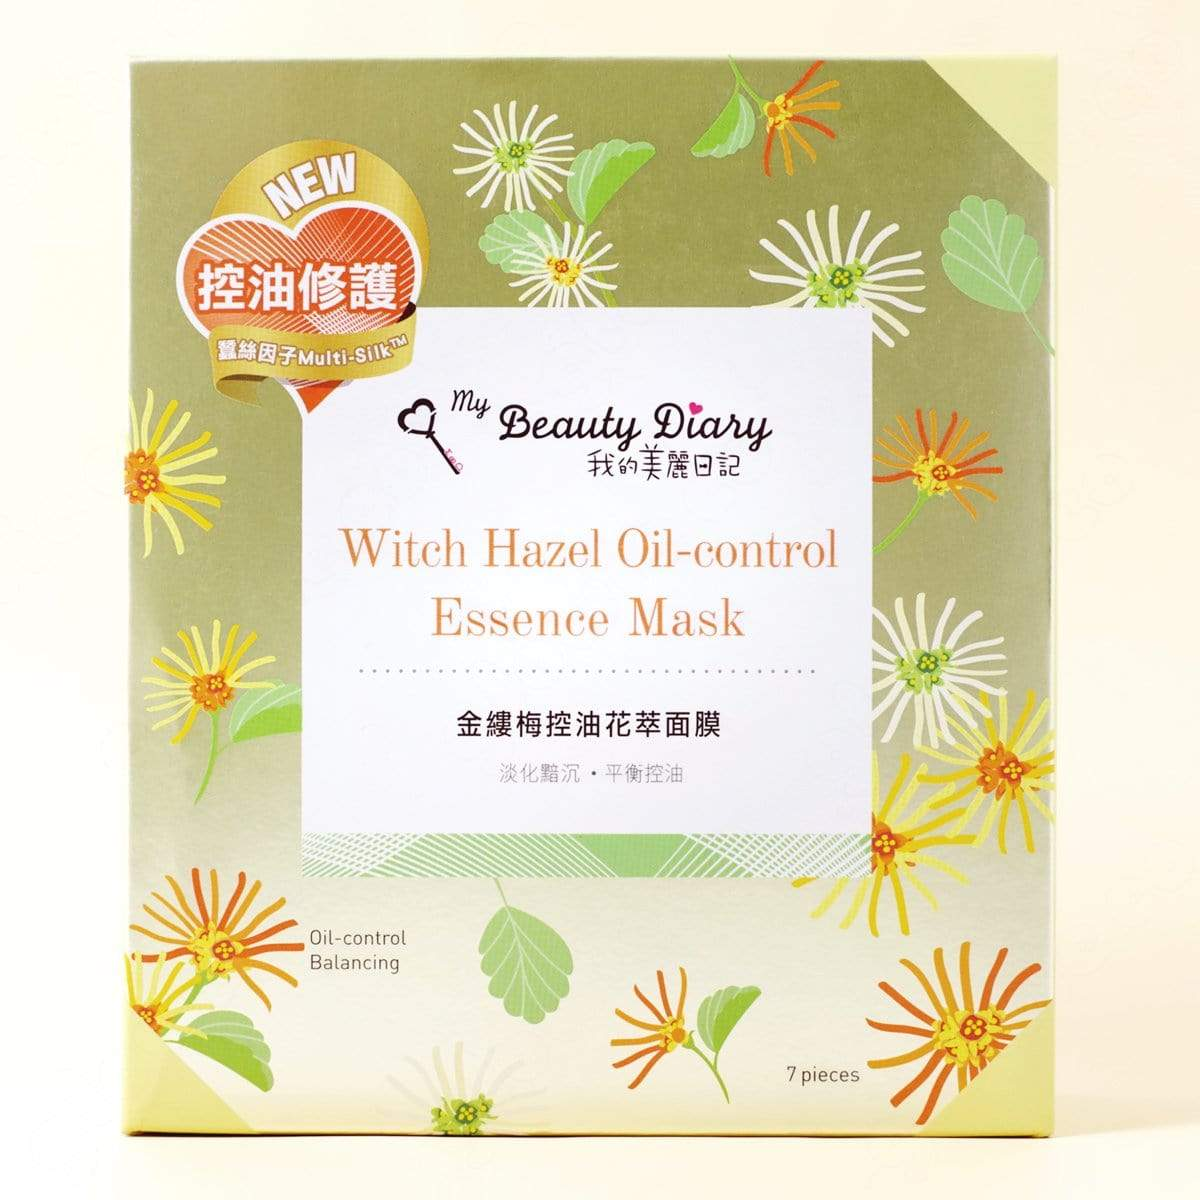 My Beauty Diary Witch Hazel Oil-control Essence Sheet Mask